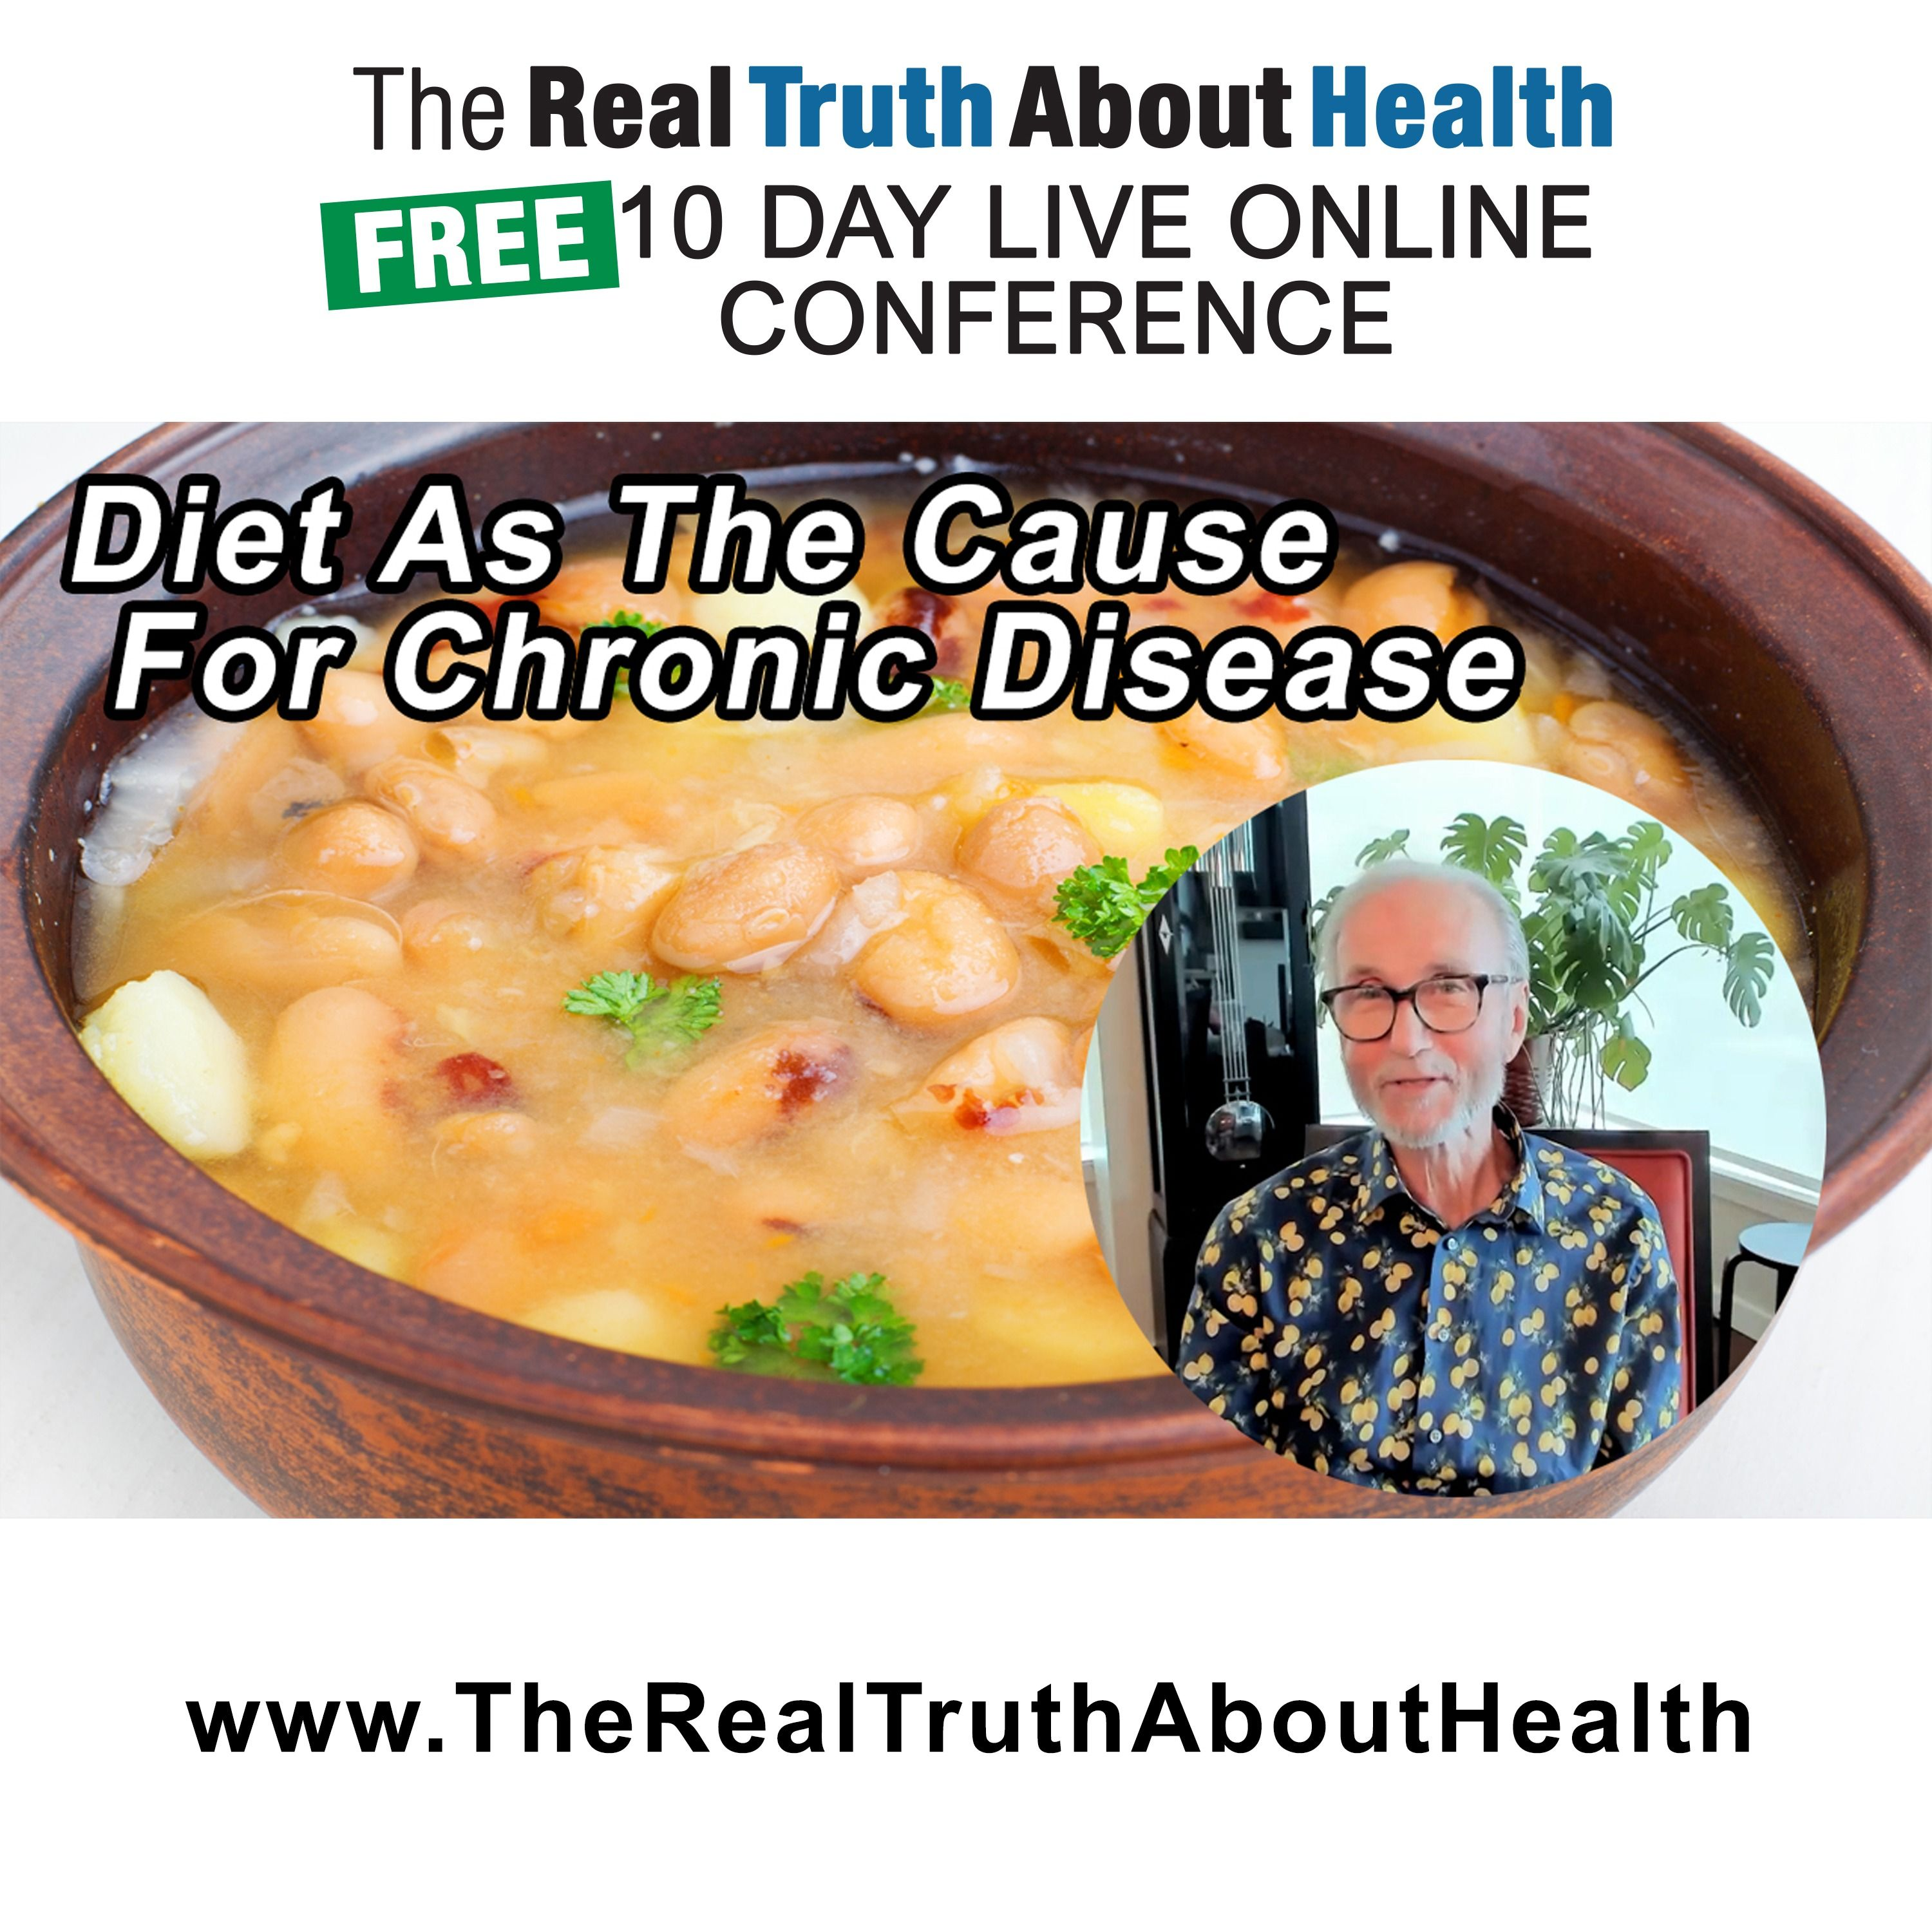 Diet As The Common Denominator For Chronic Diseases, Climate Change And COVID19 - Offstage Interview